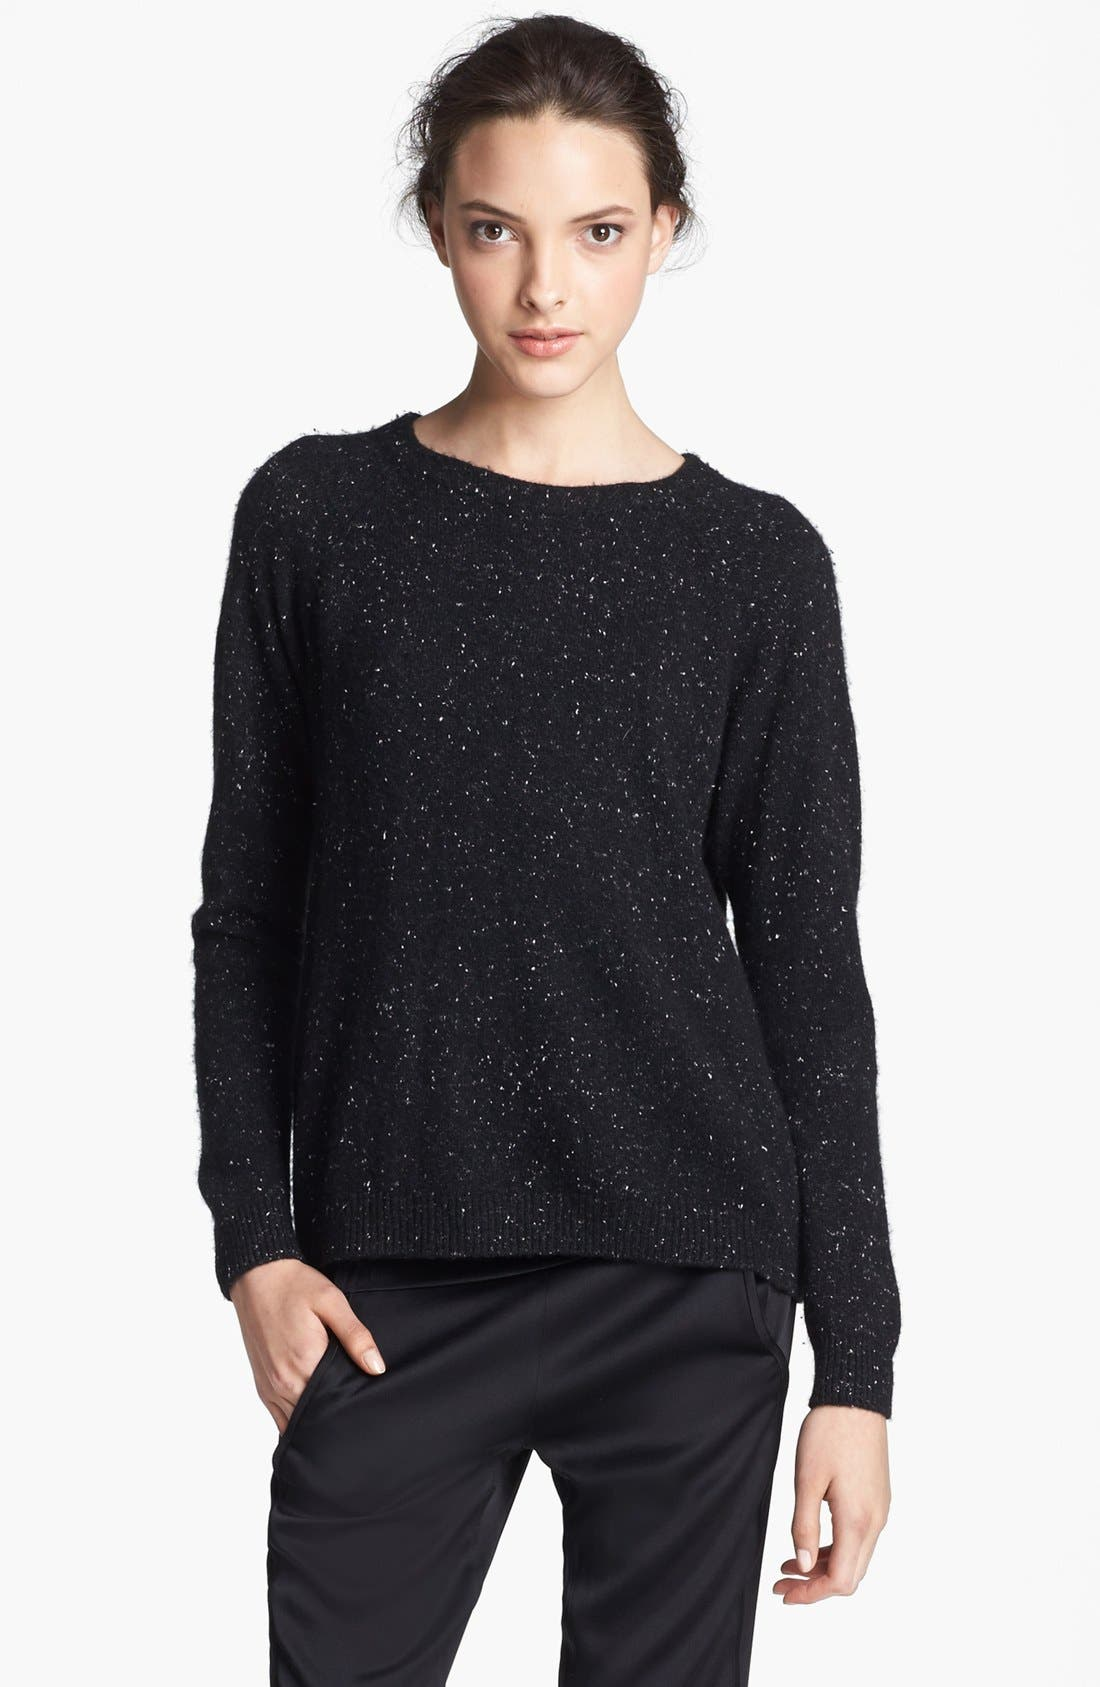 Alternate Image 1 Selected - Alexander Wang Donegal Tweed Knit Sweater